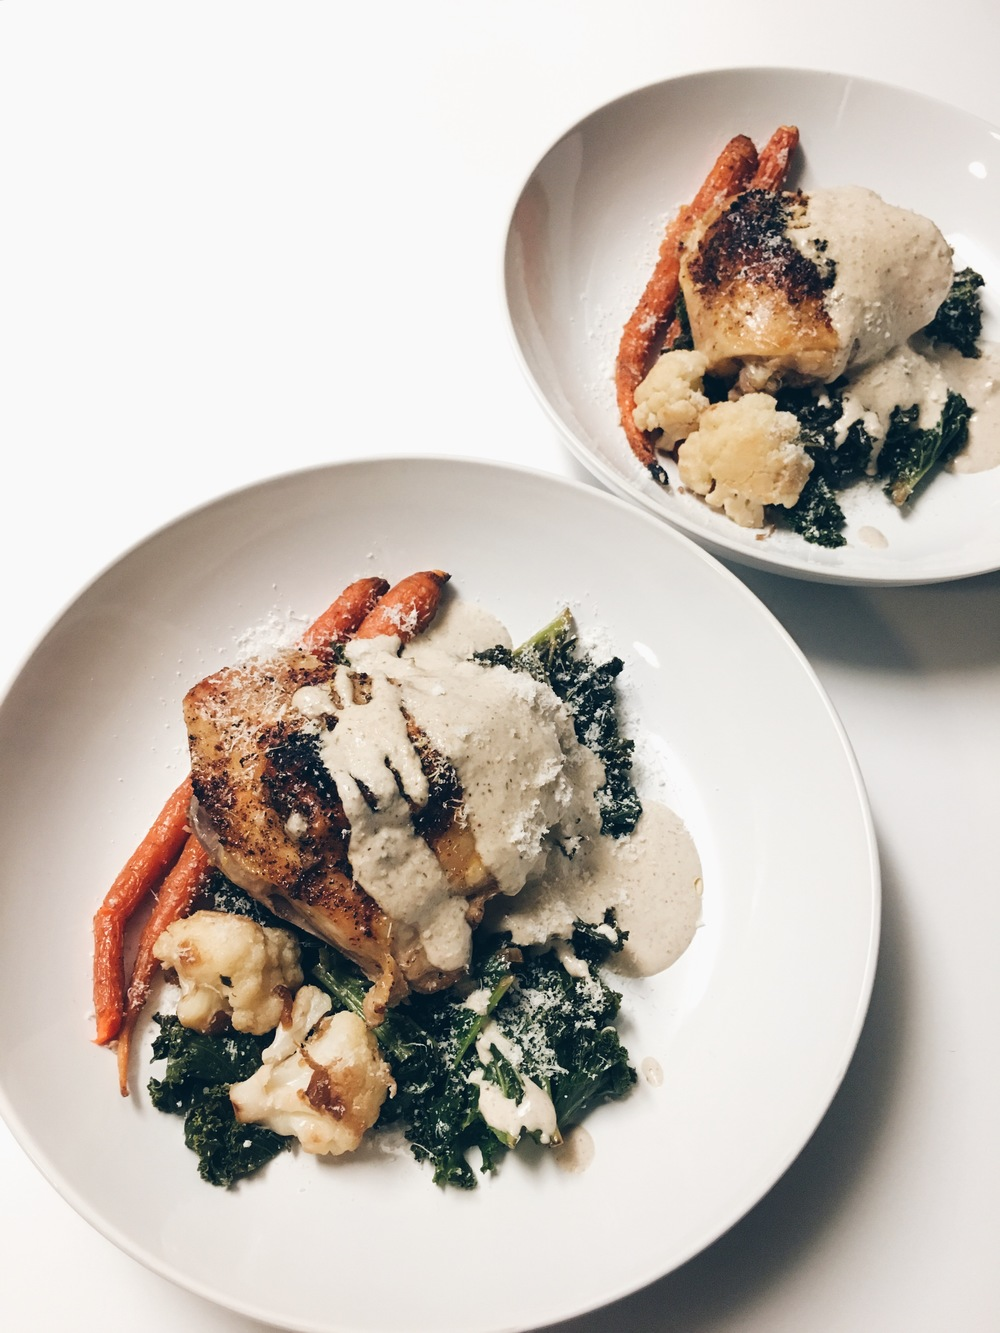 MUSHROOM CHICKEN WITH SAUTÉED KALE